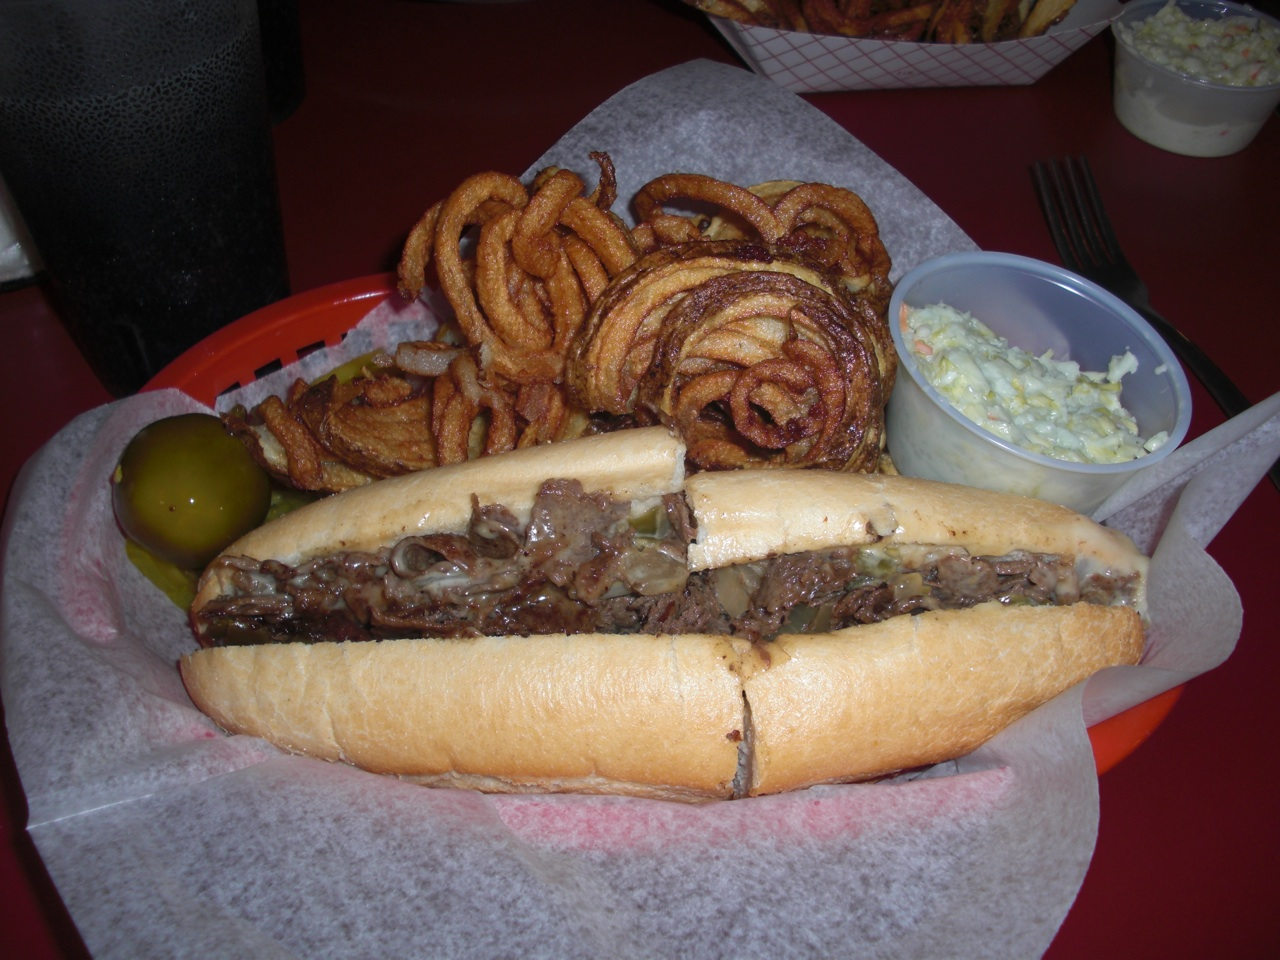 Philly Cheese Steak at the South Side Diner in Goshen, Indiana